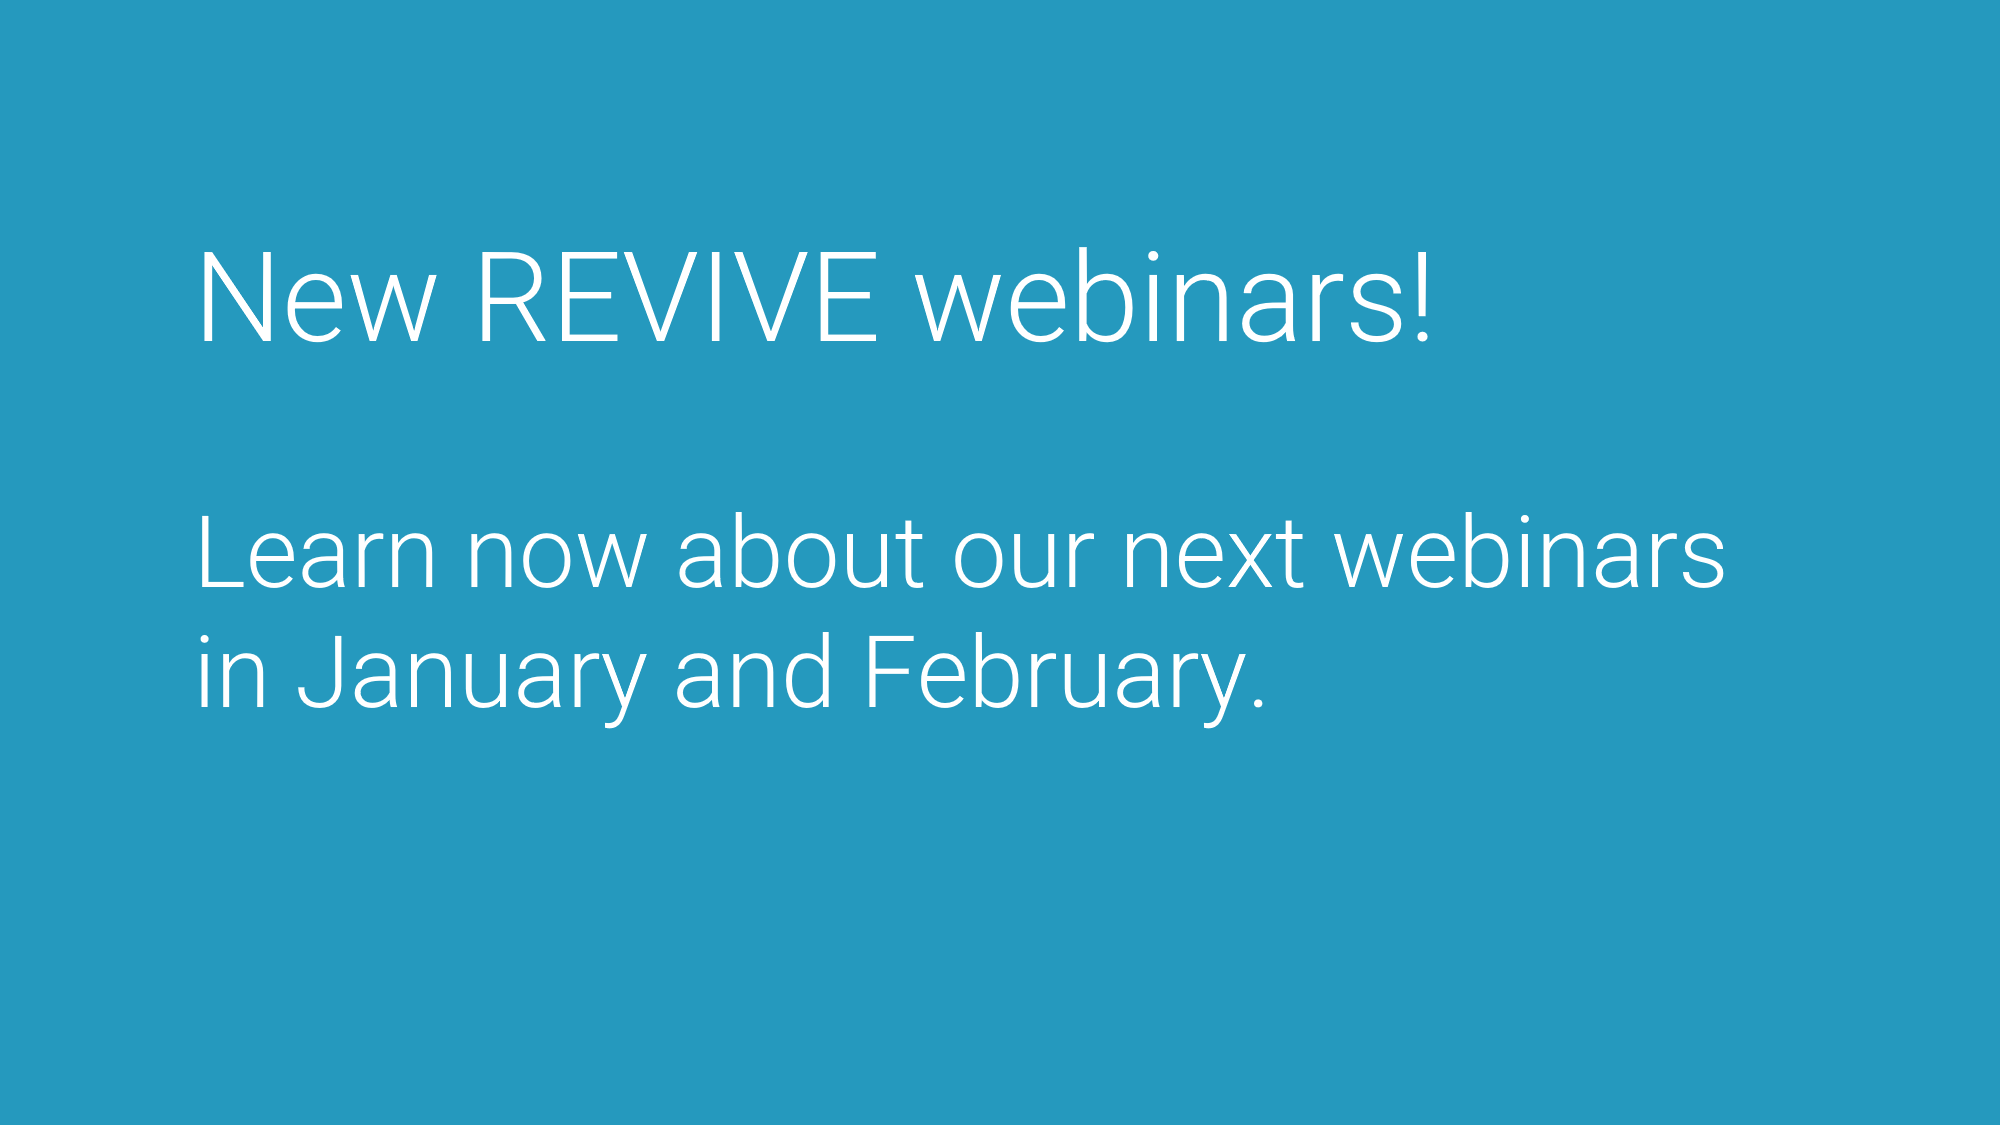 Upcoming REVIVE webinars